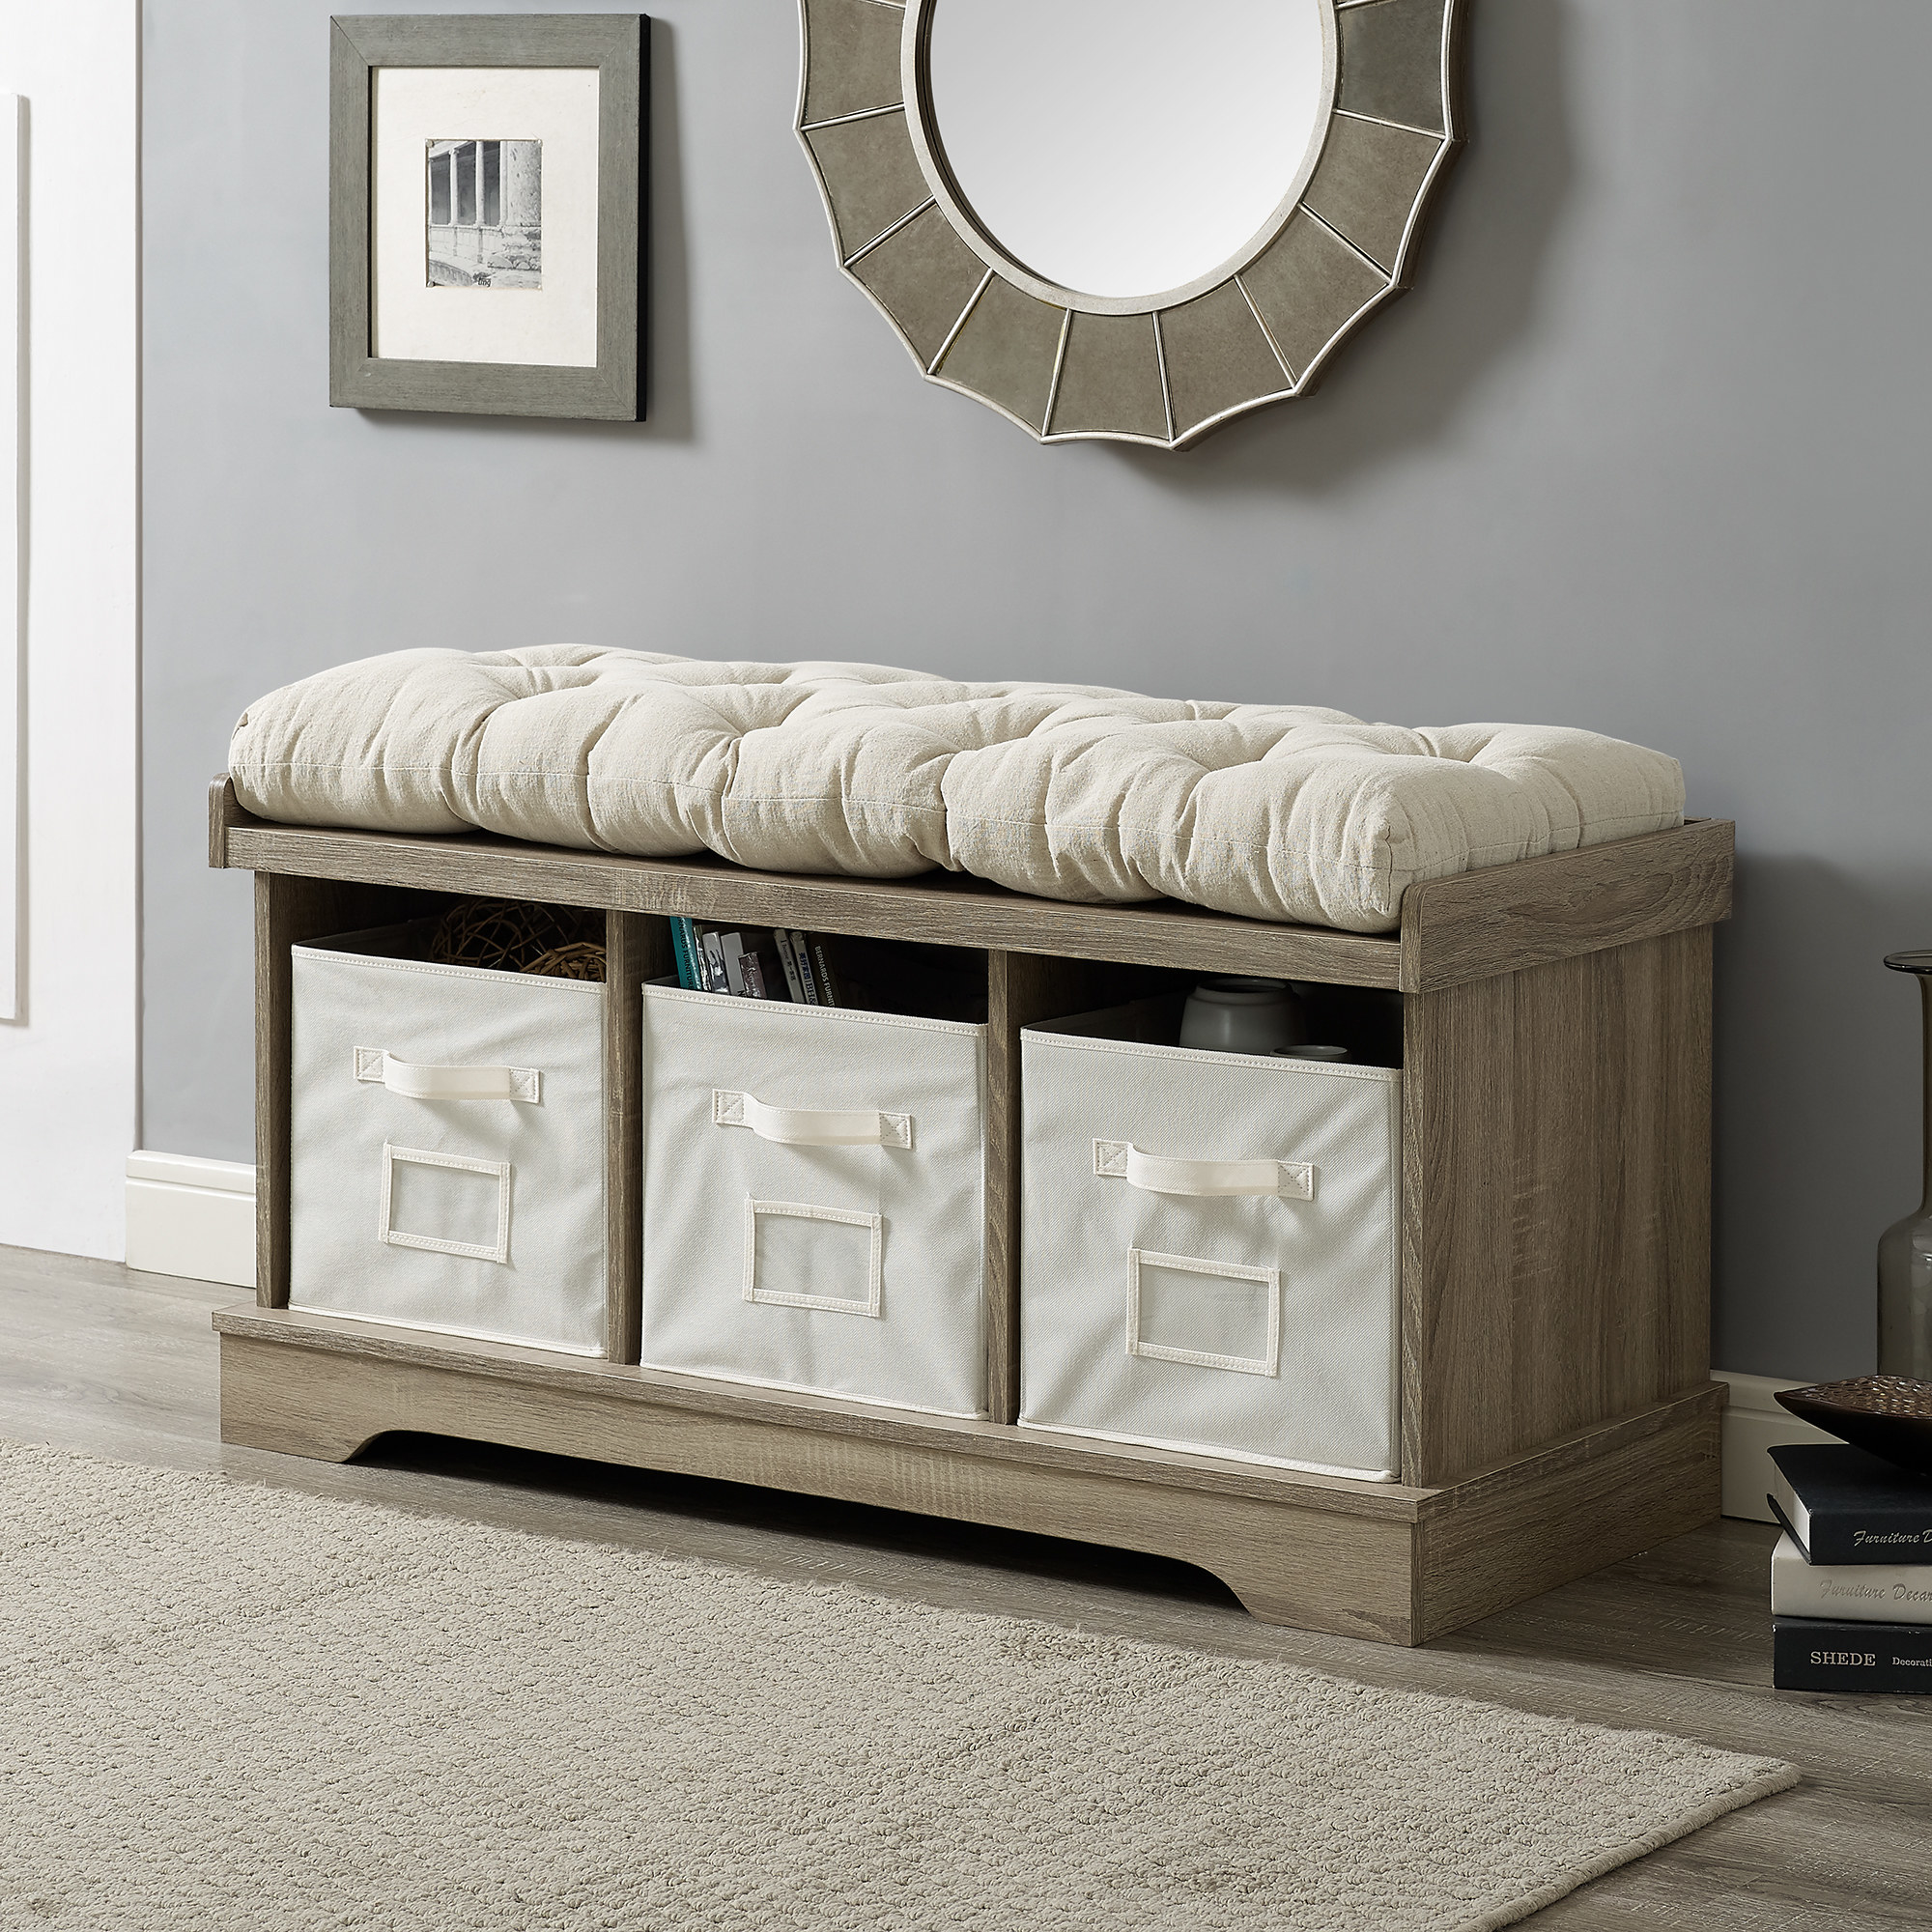 The wooden bench with a cream cushion and storage cubes